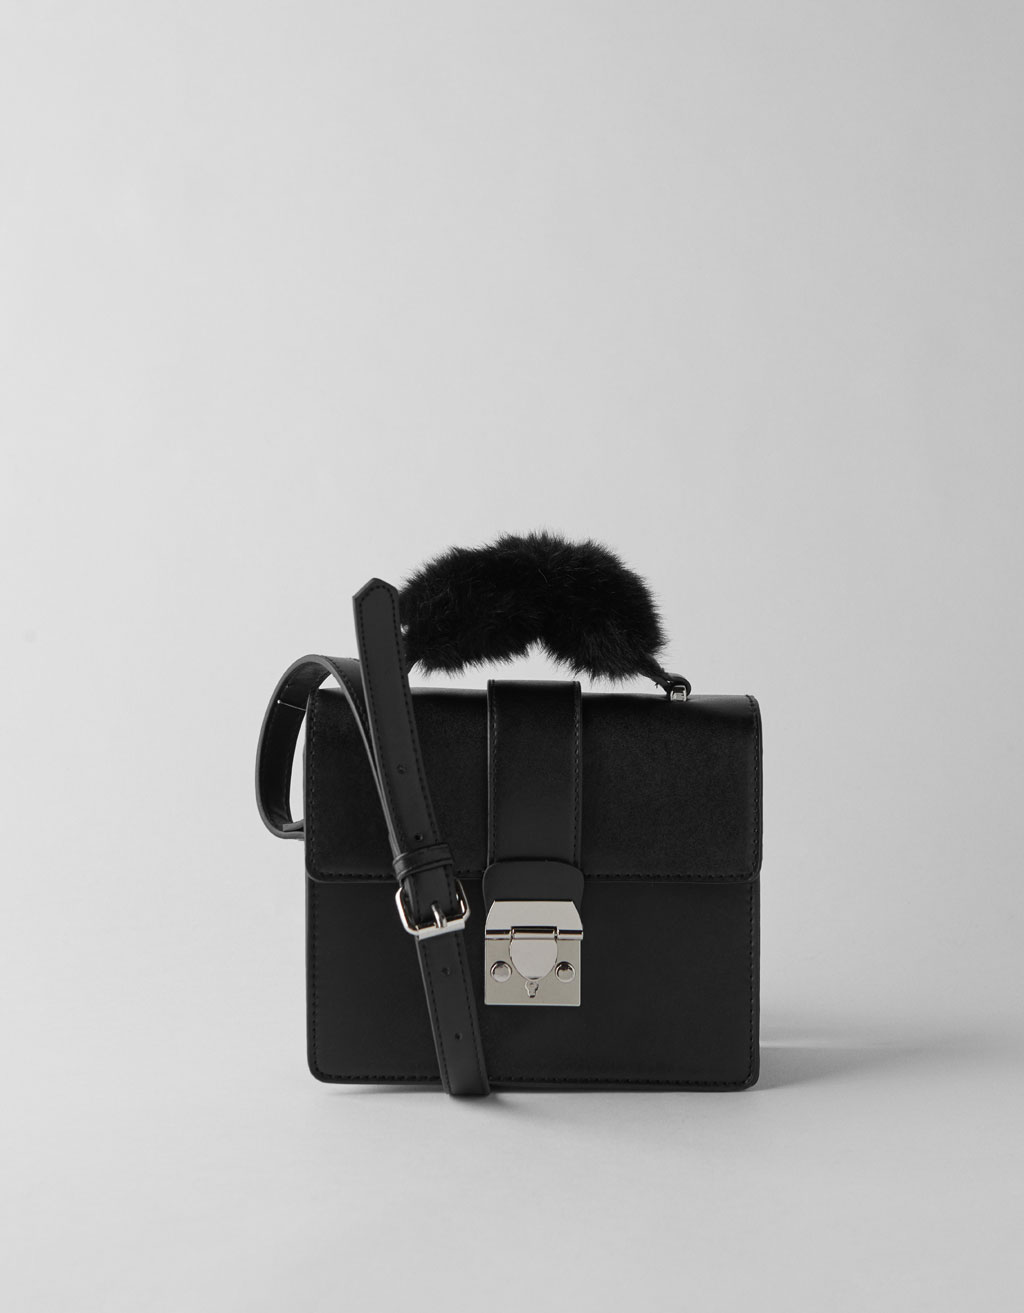 Faux leather bag with fuzzy strap